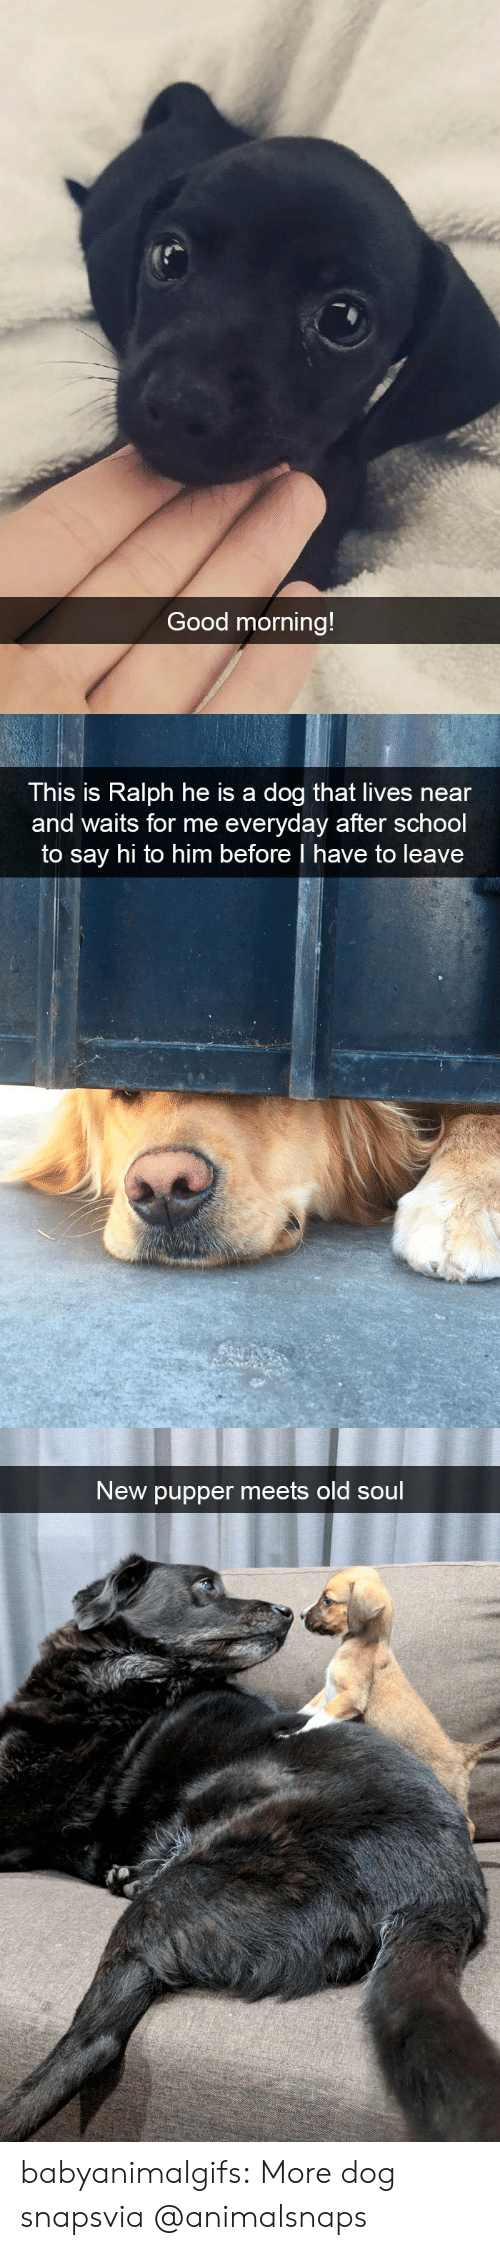 pupper: Good morning!   This is Ralph he is a dog that lives near  and waits for me everyday after school  to say hi to him before I have to leave   New pupper meets old soul babyanimalgifs:  More dog snapsvia @animalsnaps​